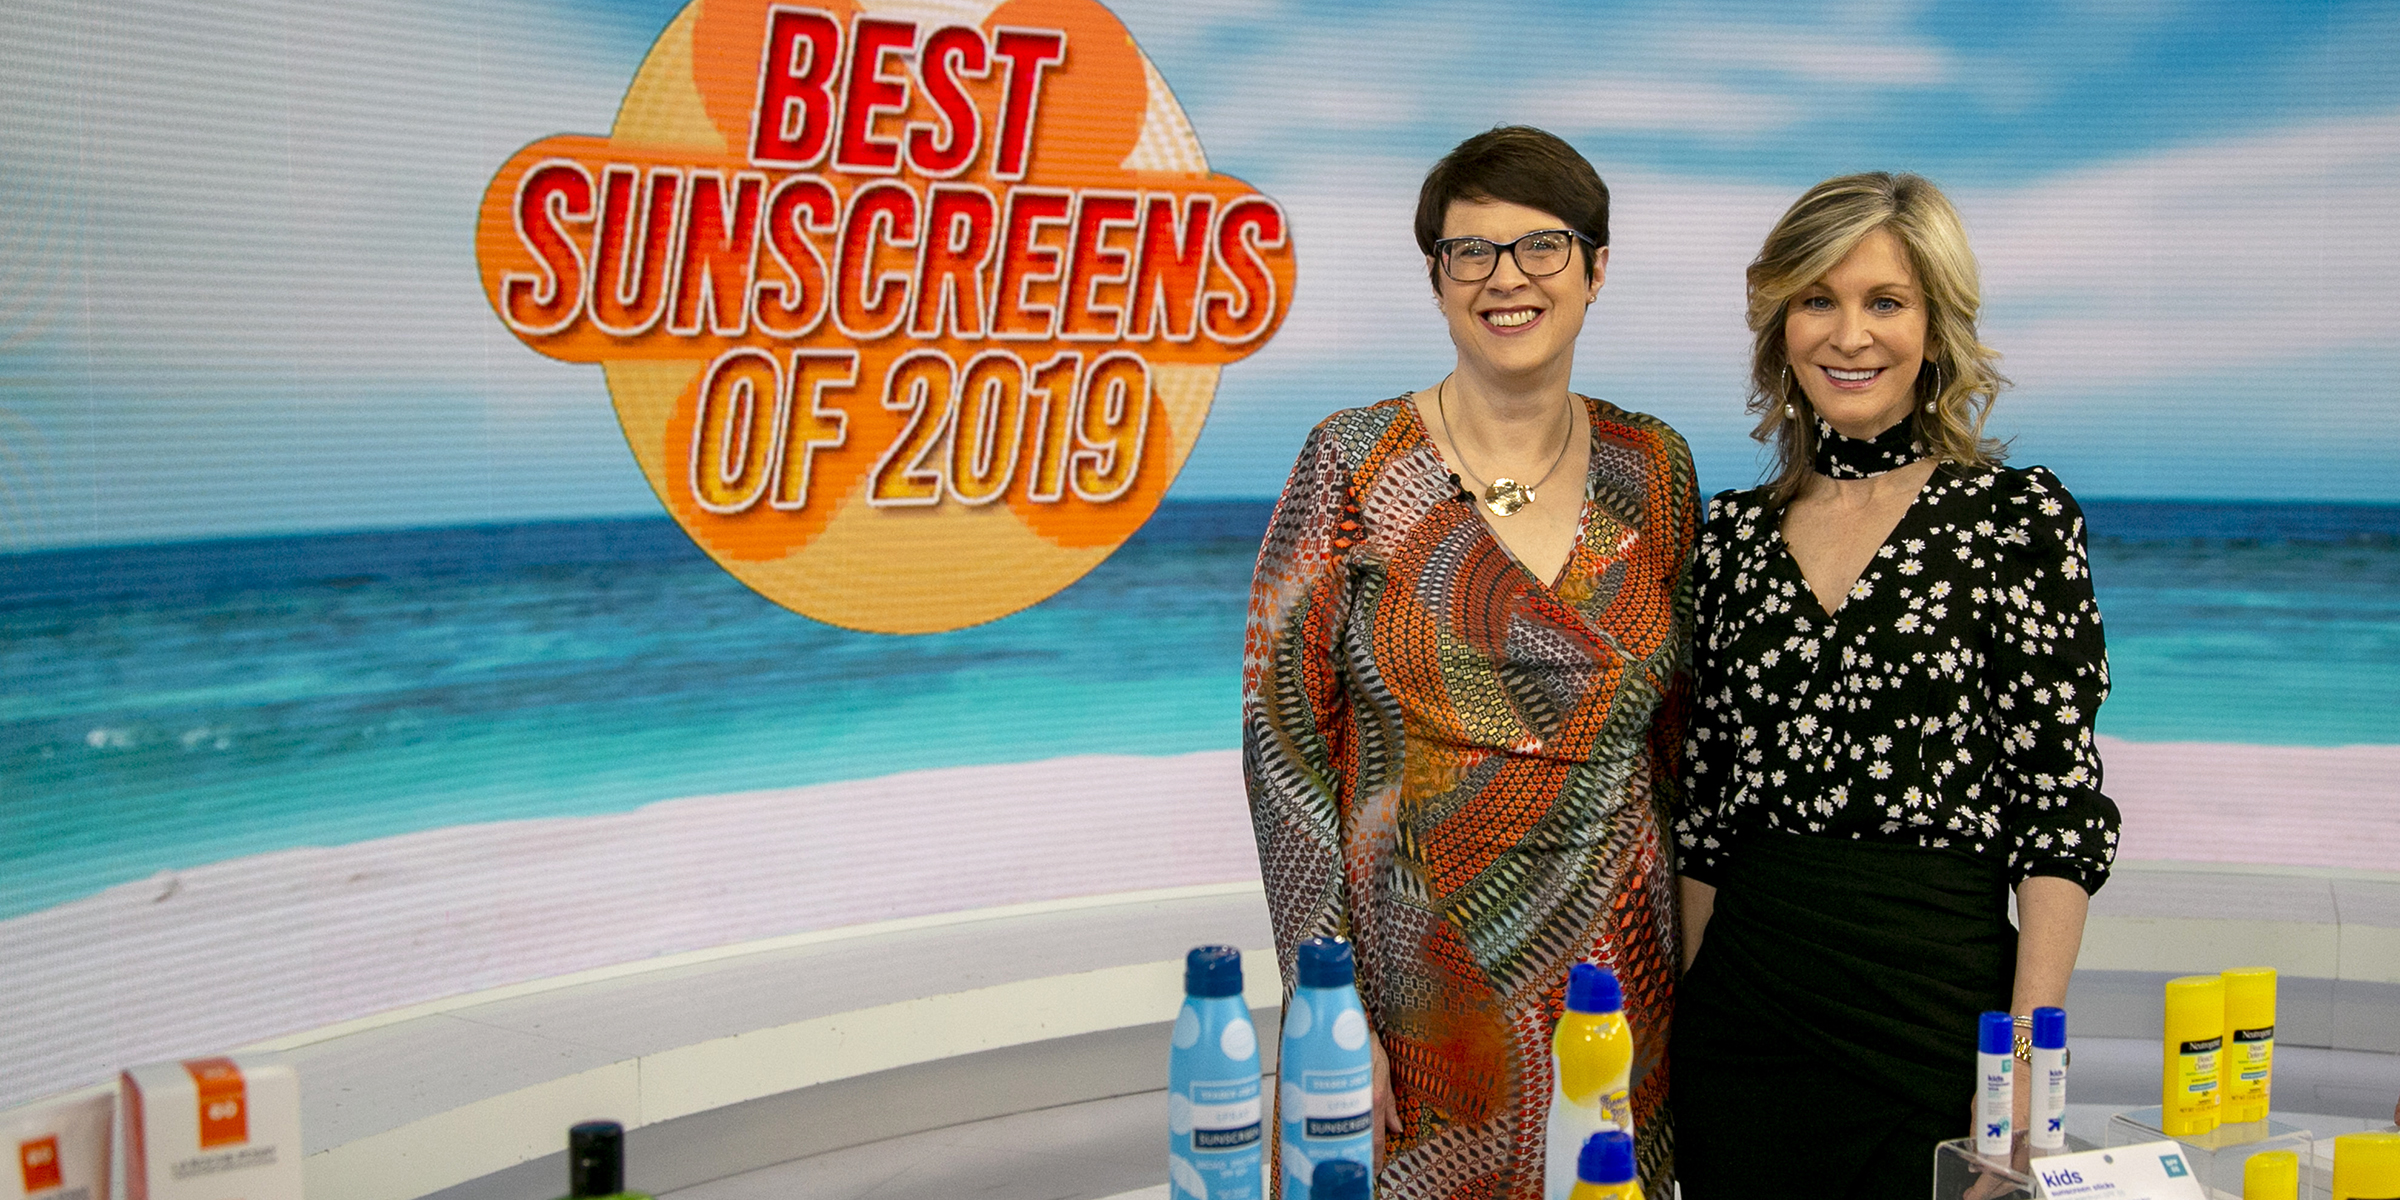 The best sunscreens to buy in 2019 according to Consumer Reports